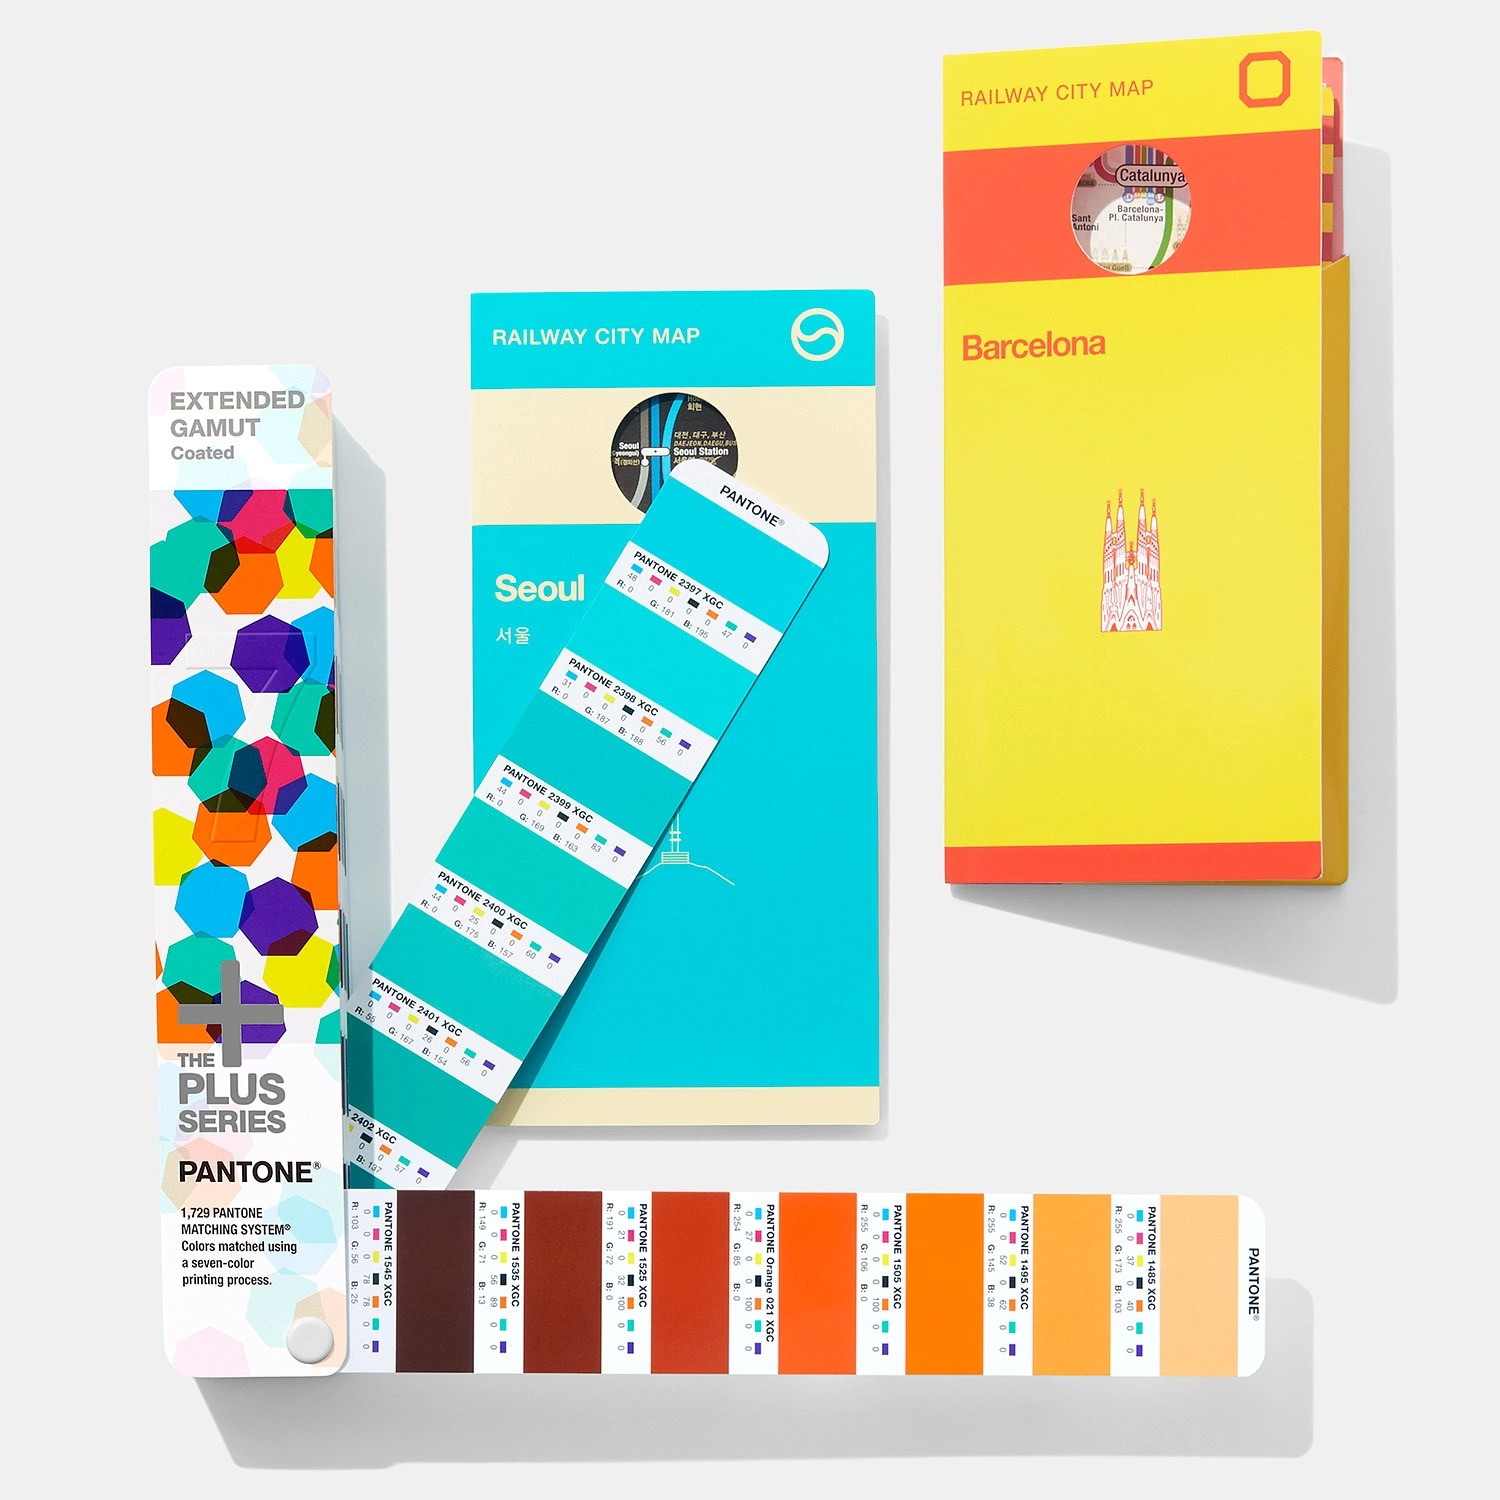 hight resolution of pantone extended gamut guide process colors page